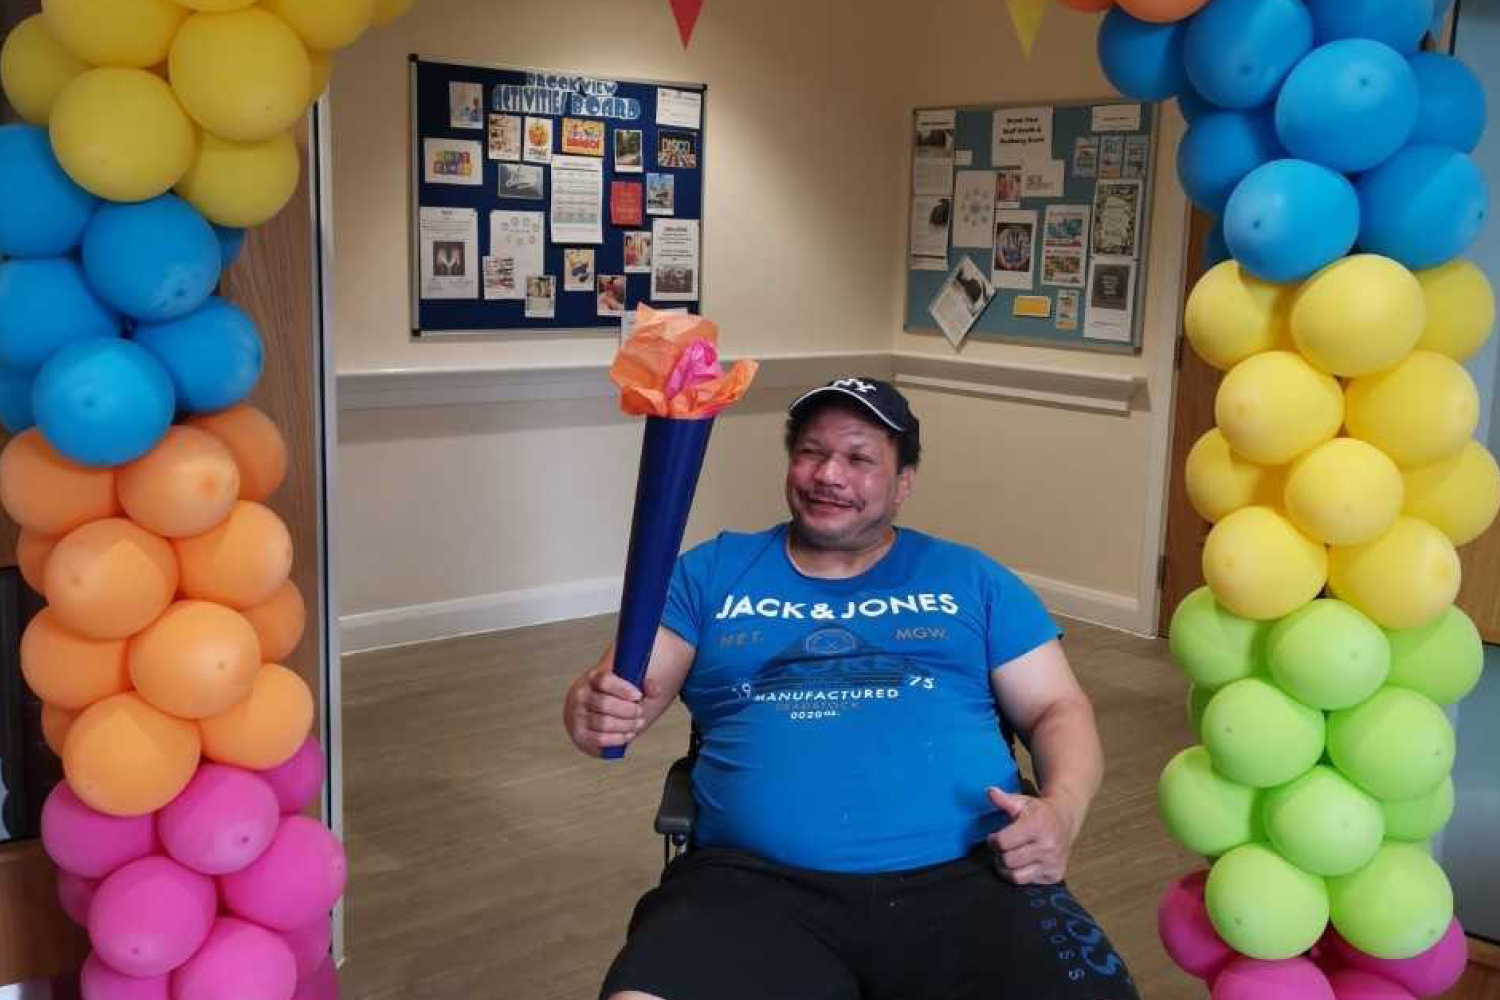 A male holding an Olympic torch under a balloon arch